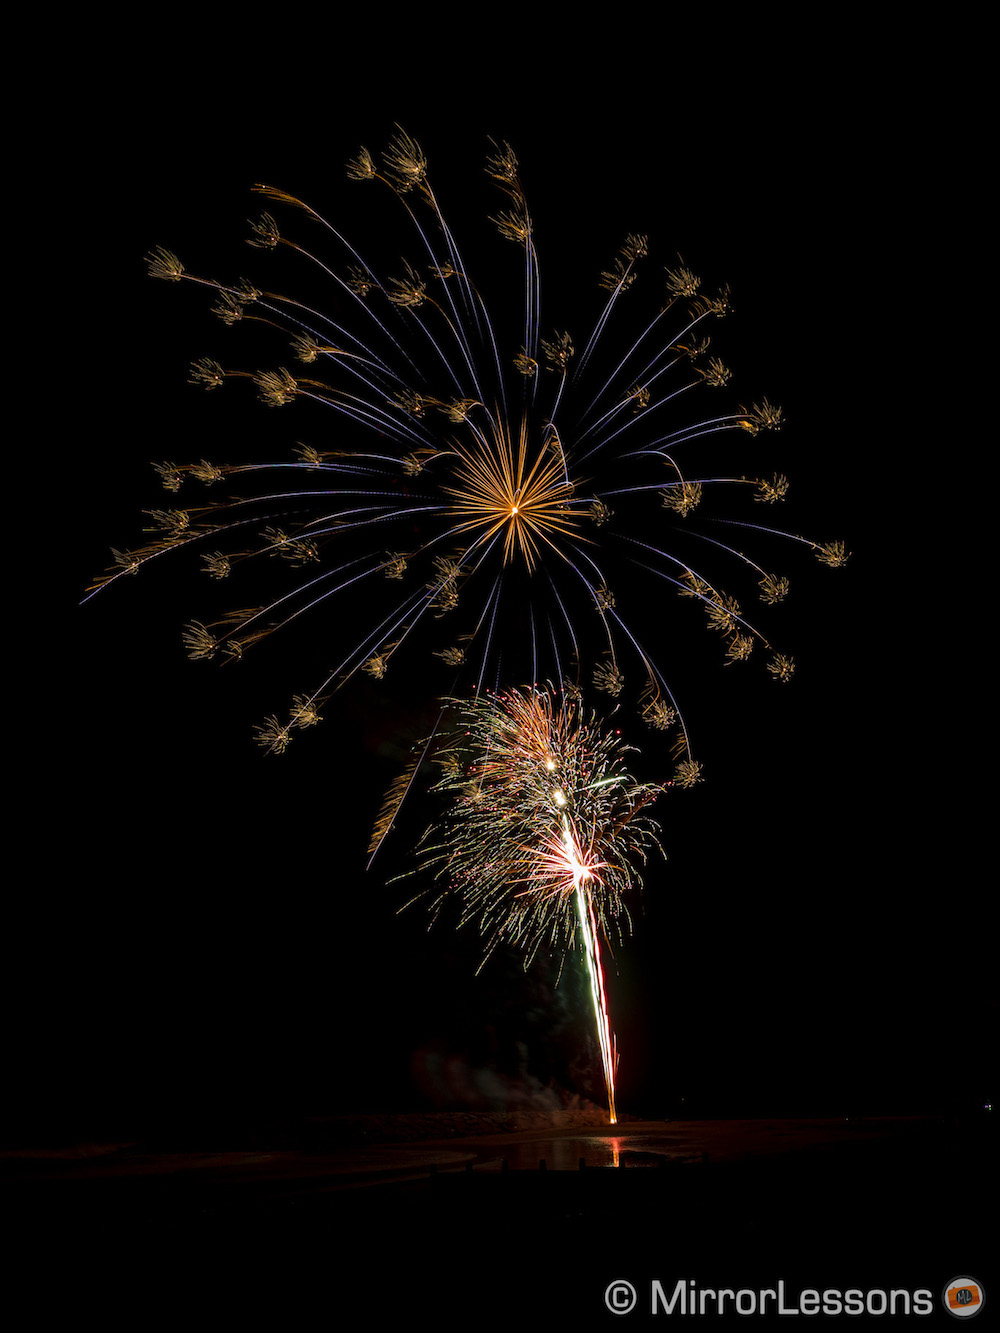 using live composite on the olympus om d e m1 for fireworks